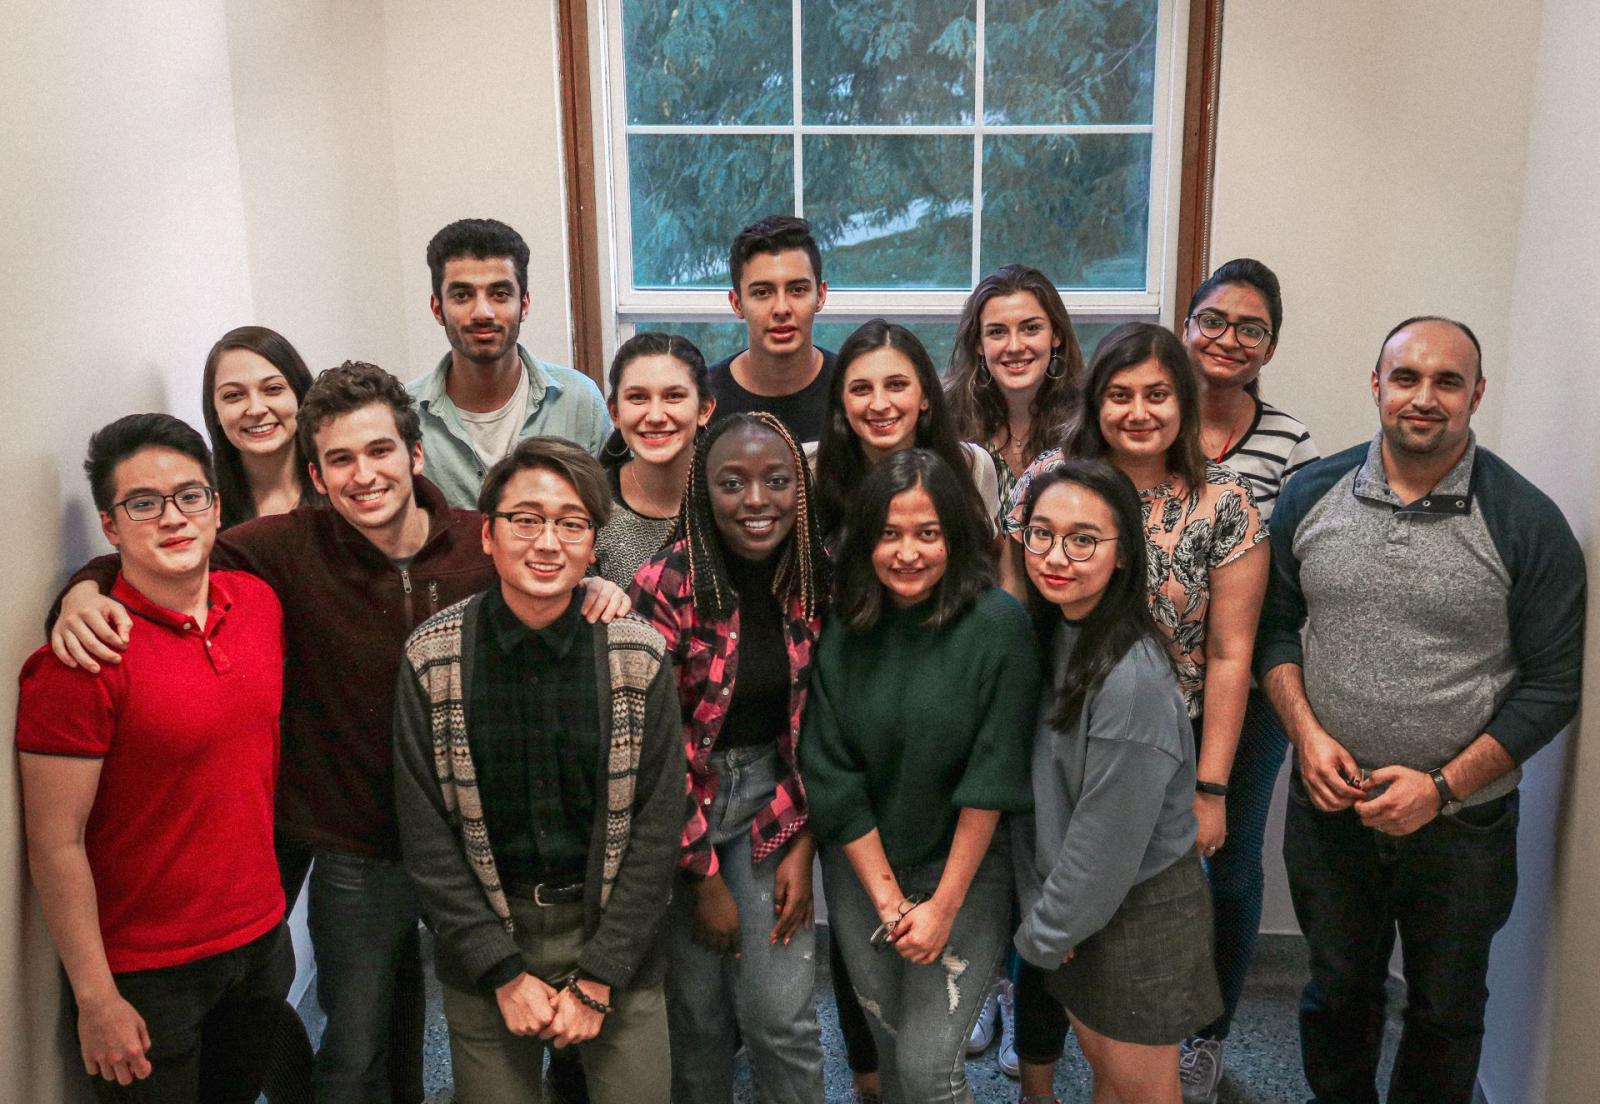 The 2019-20 Global Peer Assistant team is made up of 15 domestic and international students from around the world to help build connections on campus for new international students.